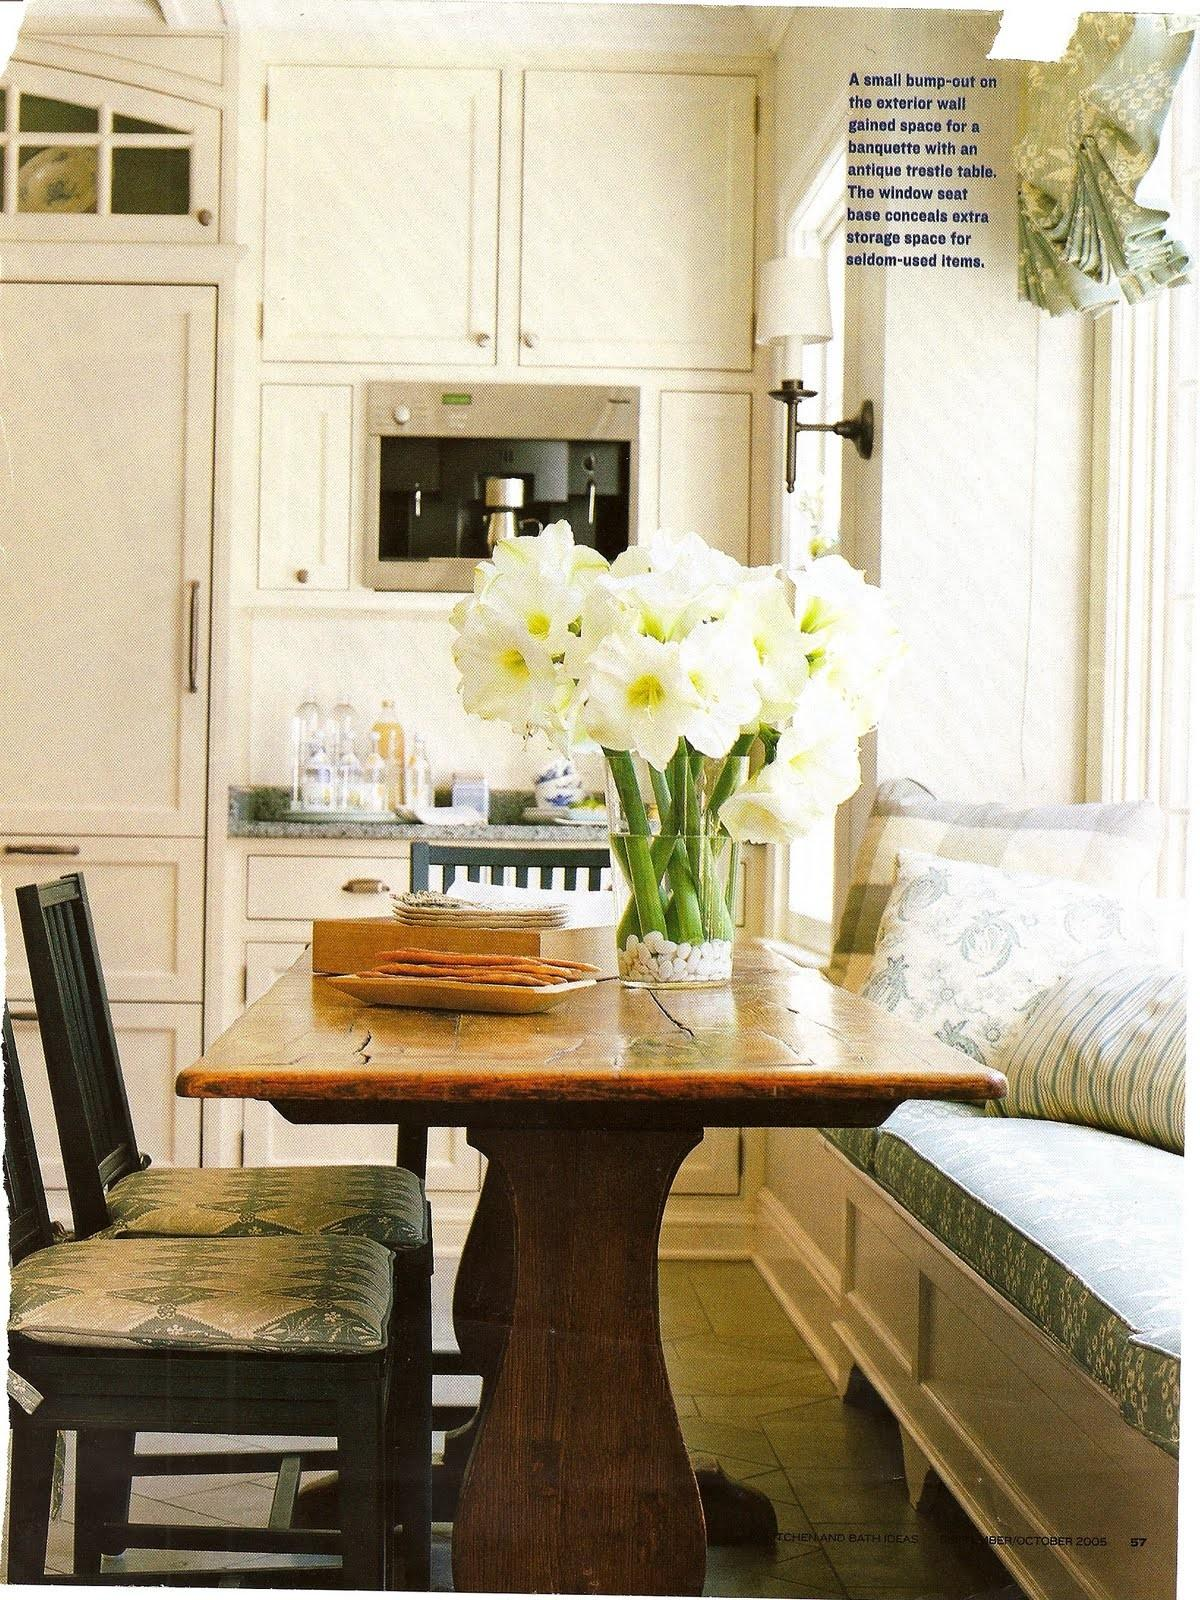 Suzeday Tuesday Kitchens Belclaire House